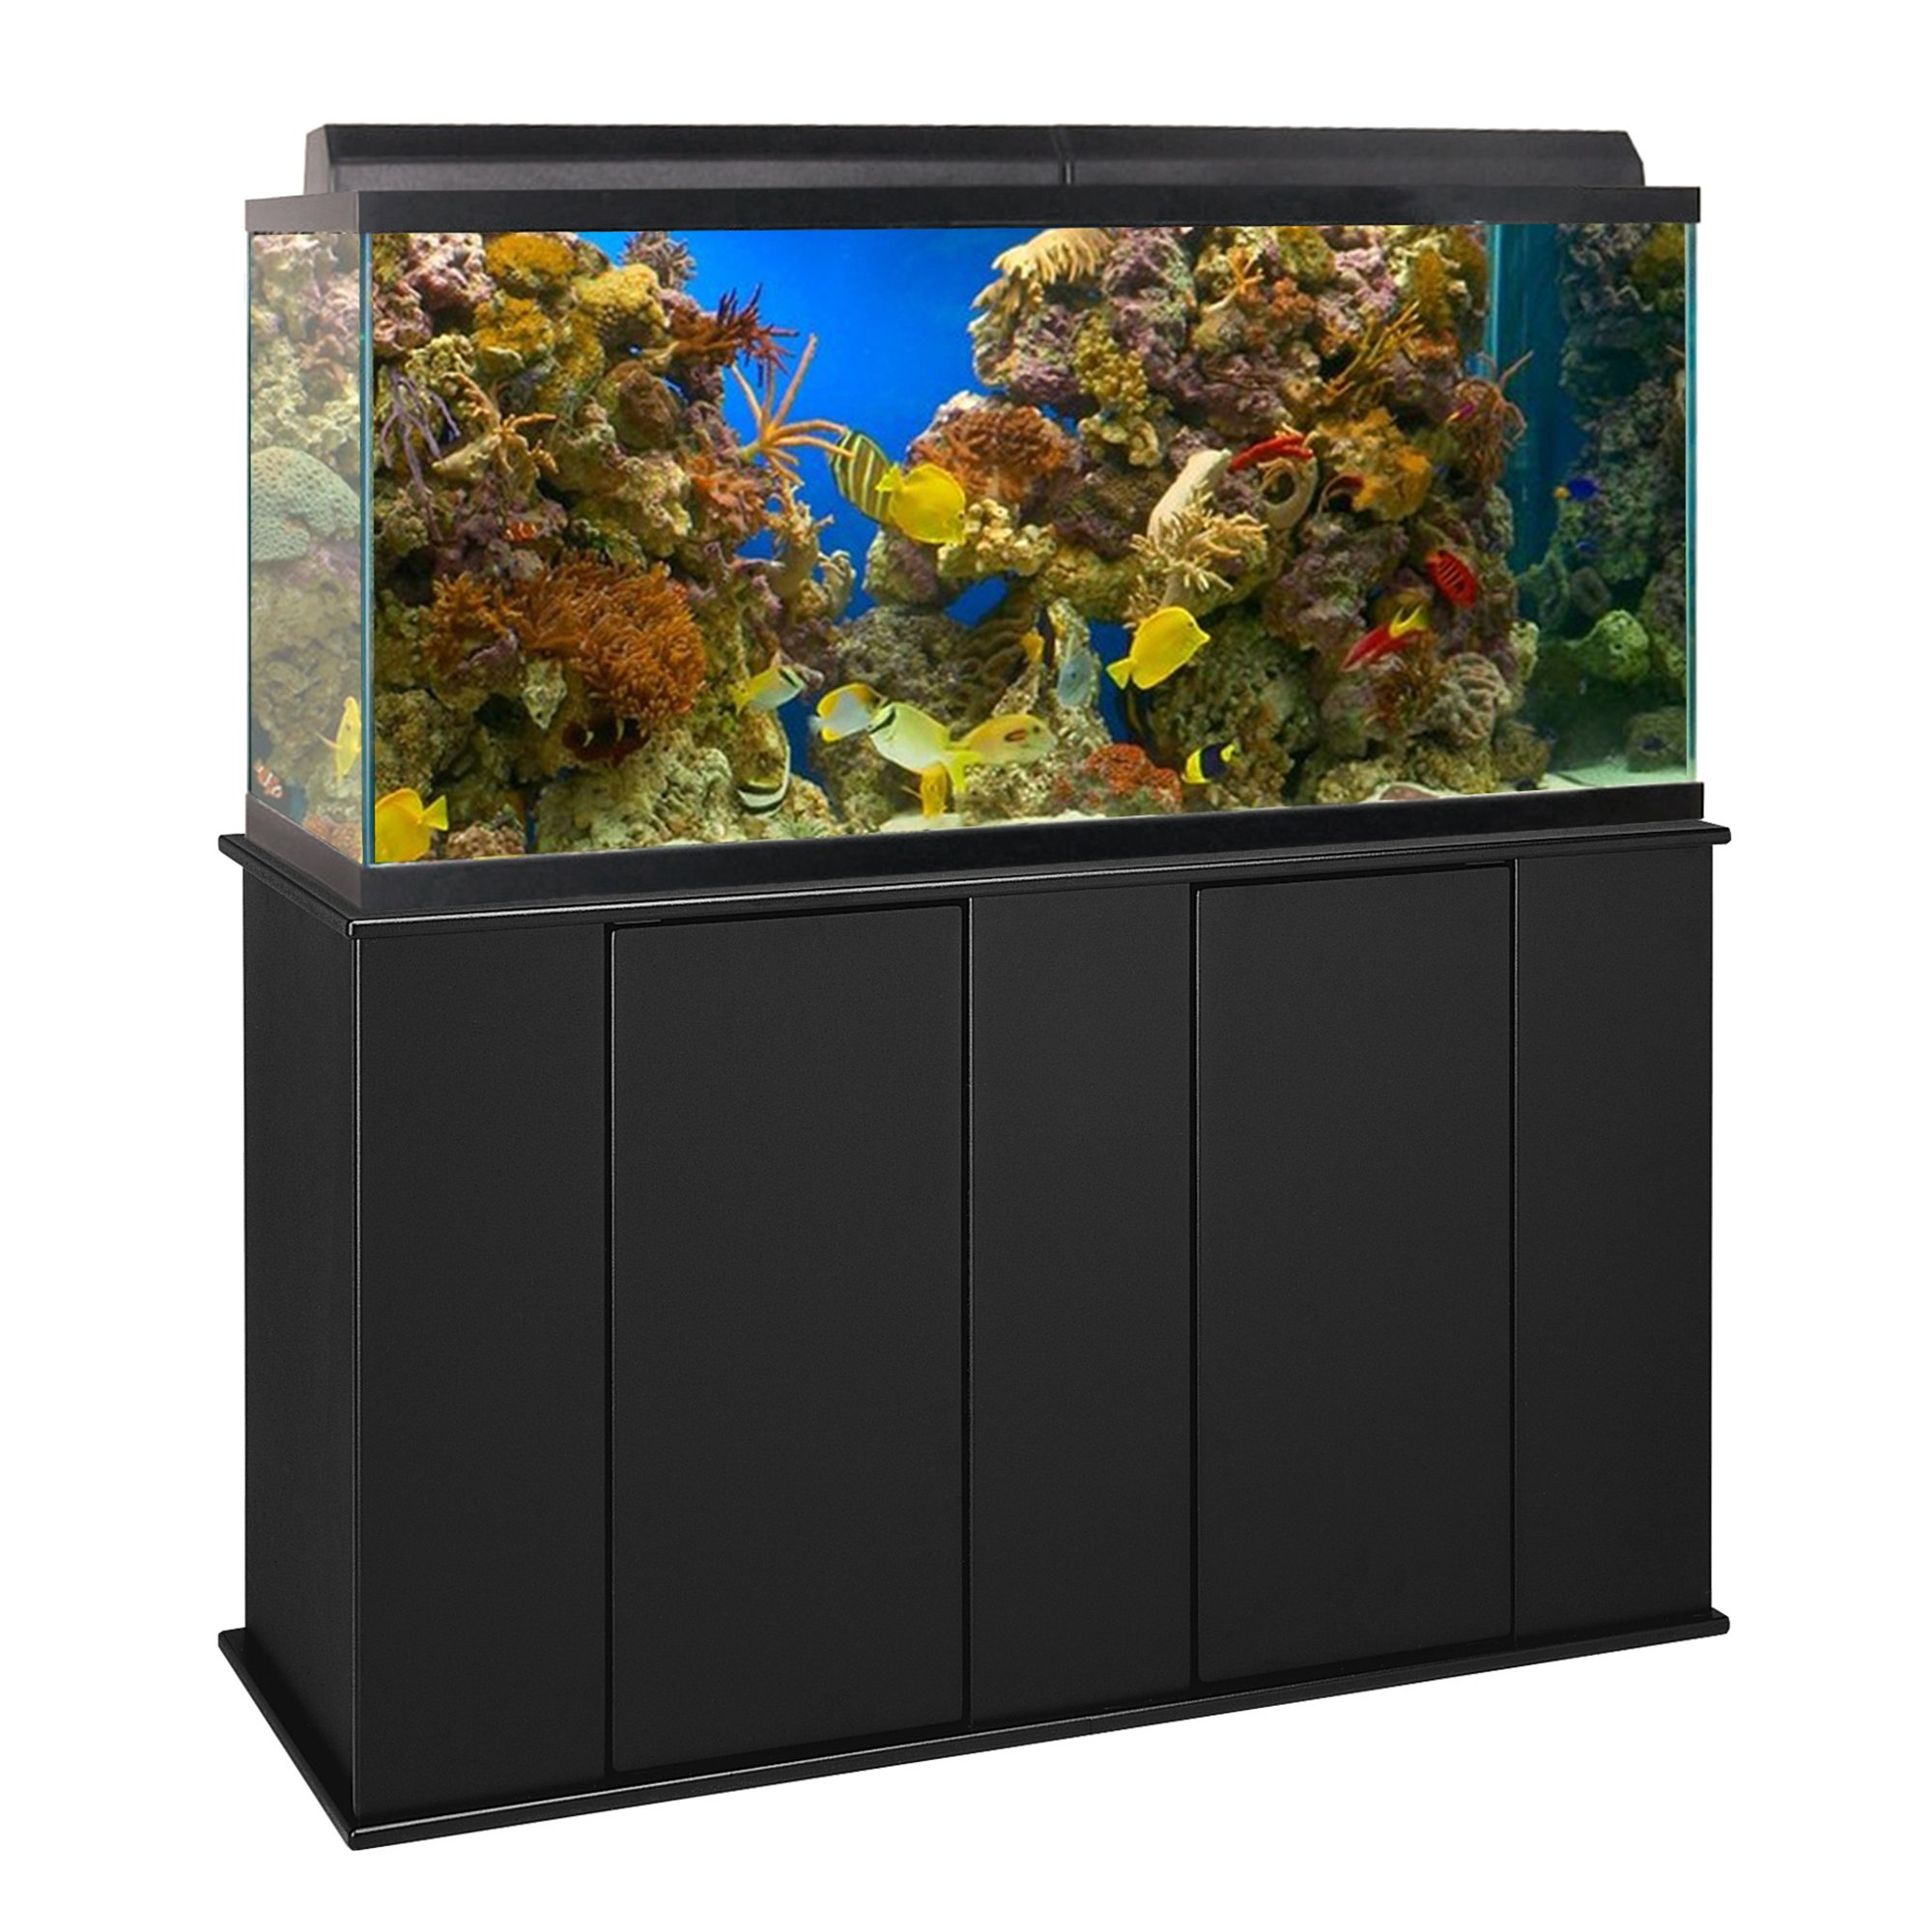 Cool Aquariums For Sale Aquarium Stands Fish Tank Stands Cabinets Aquarium Canopies